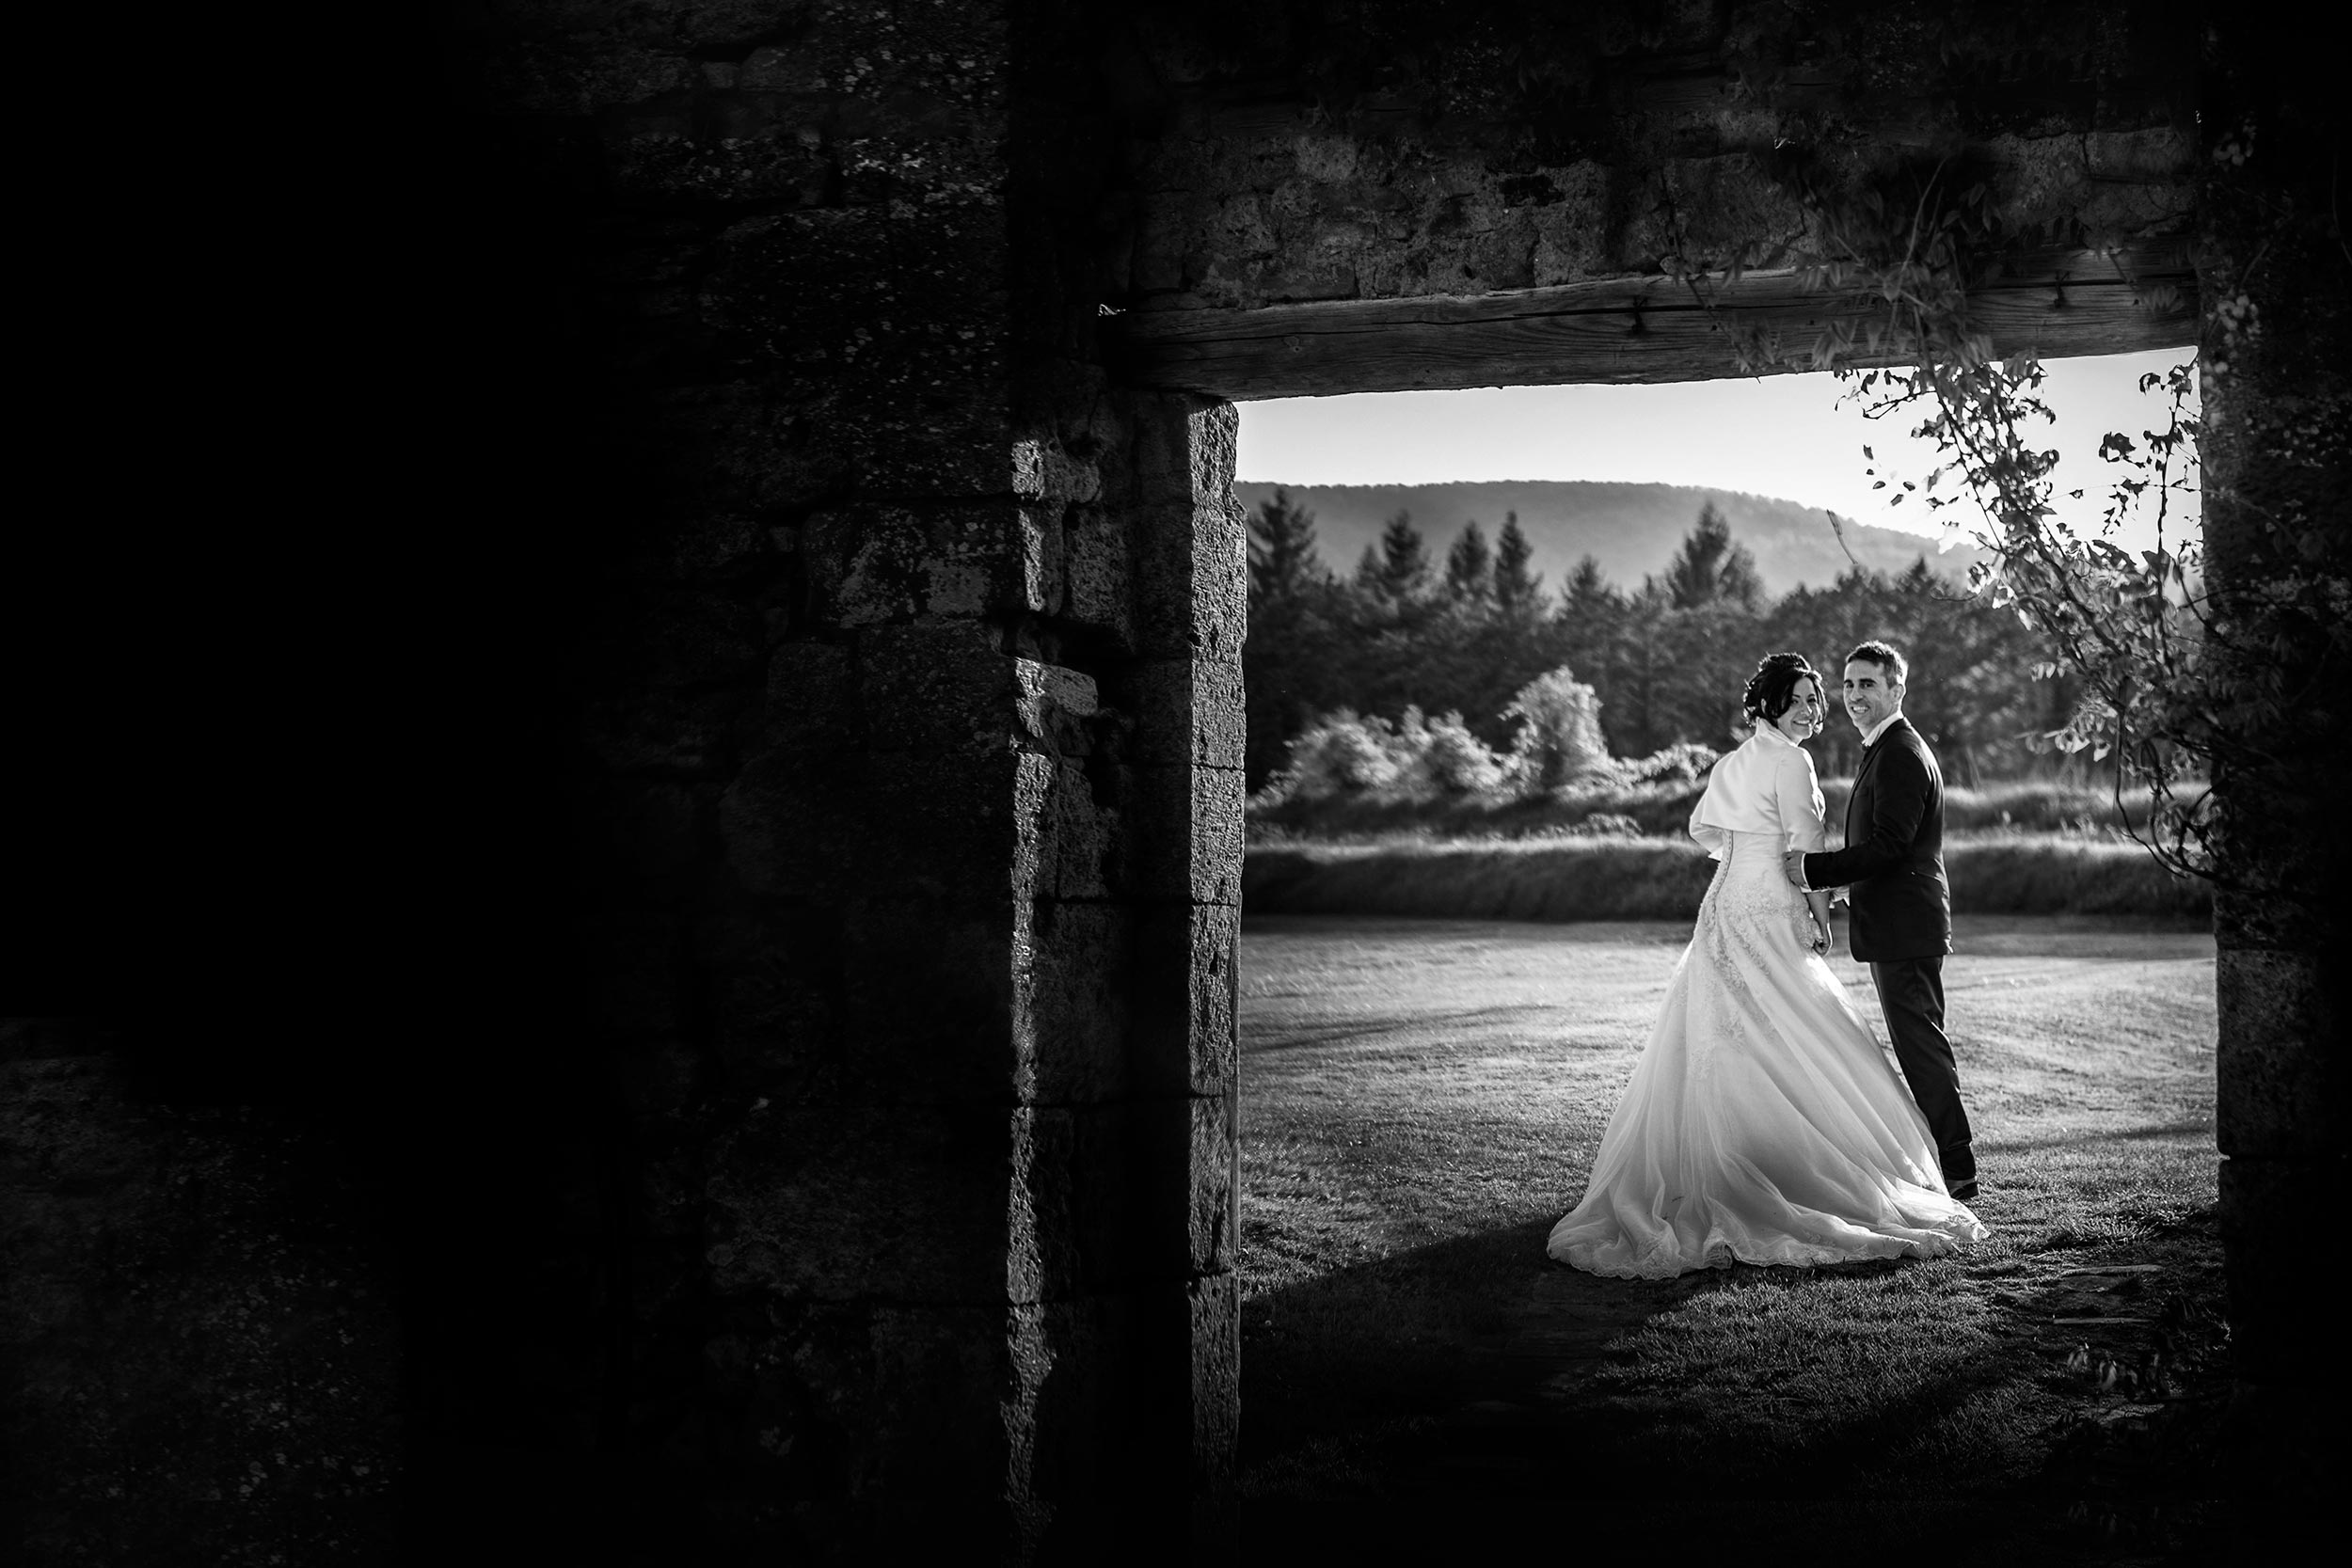 Alessia Bruchi - Fotostudio Siena, fotografa specializzata in fotografia di matrimonio per la toscana e italia. Destination wedding photographer available in Italy and abroad